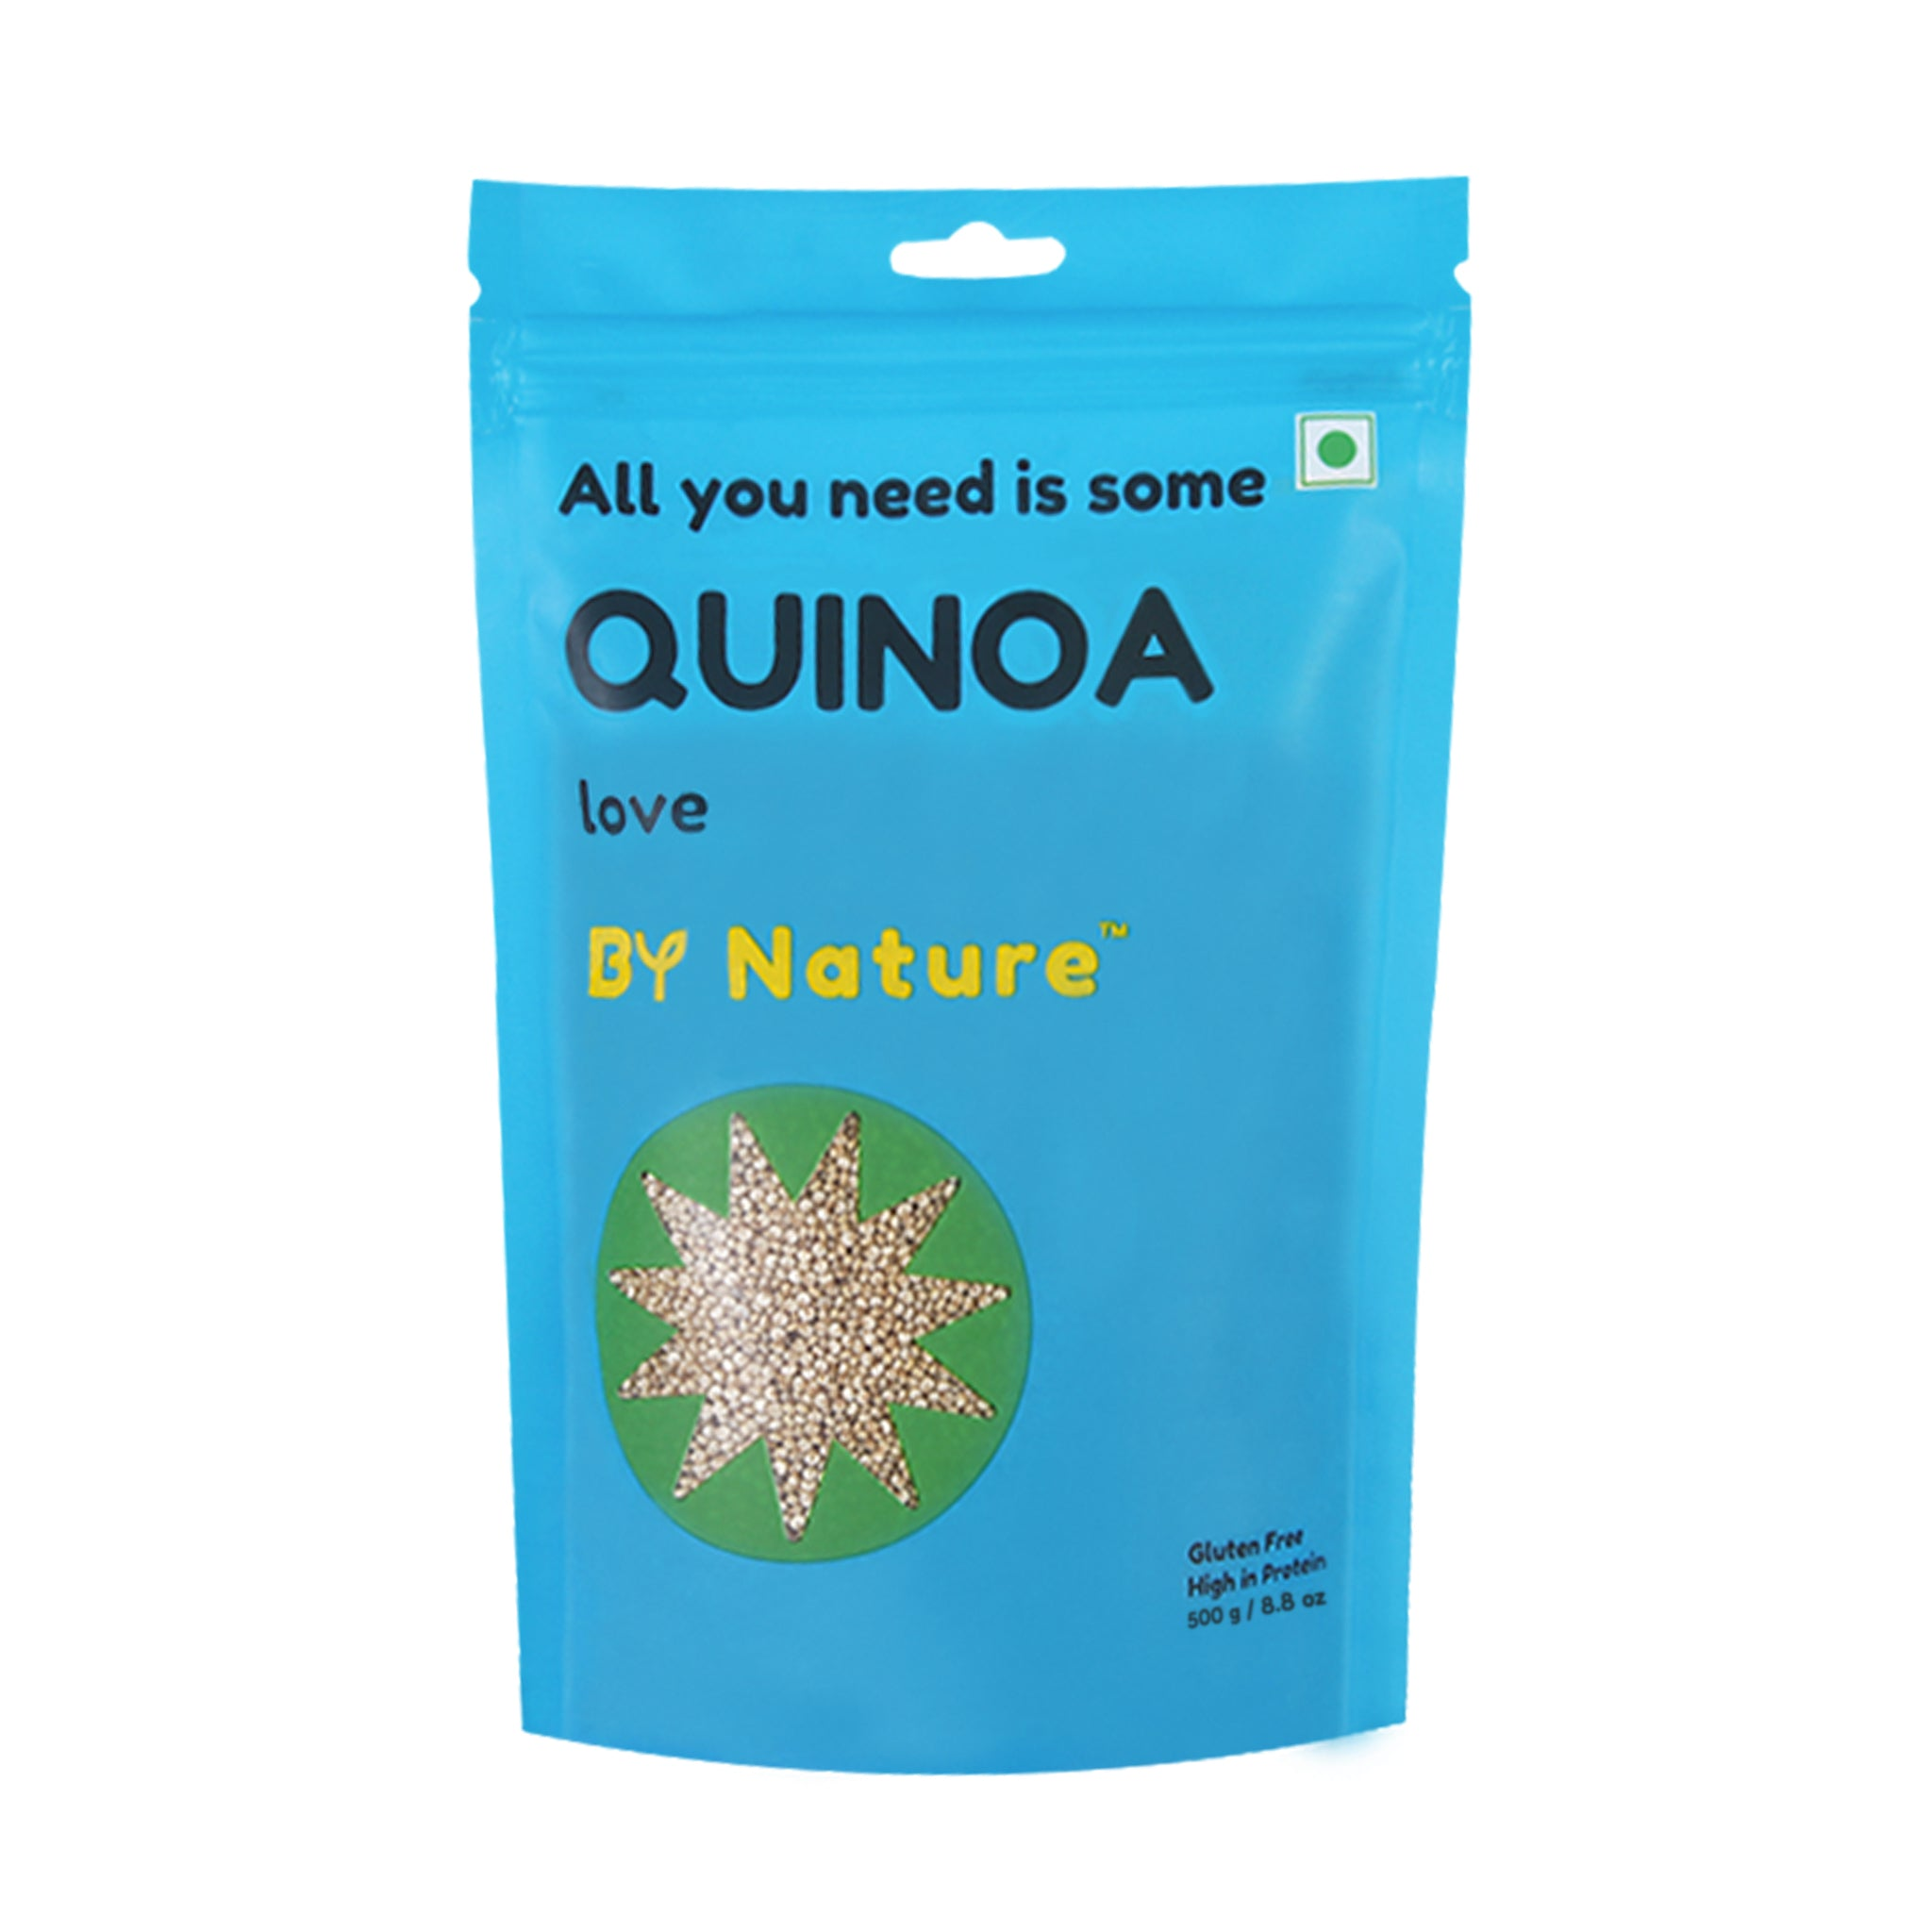 By Nature Quinoa 500 g